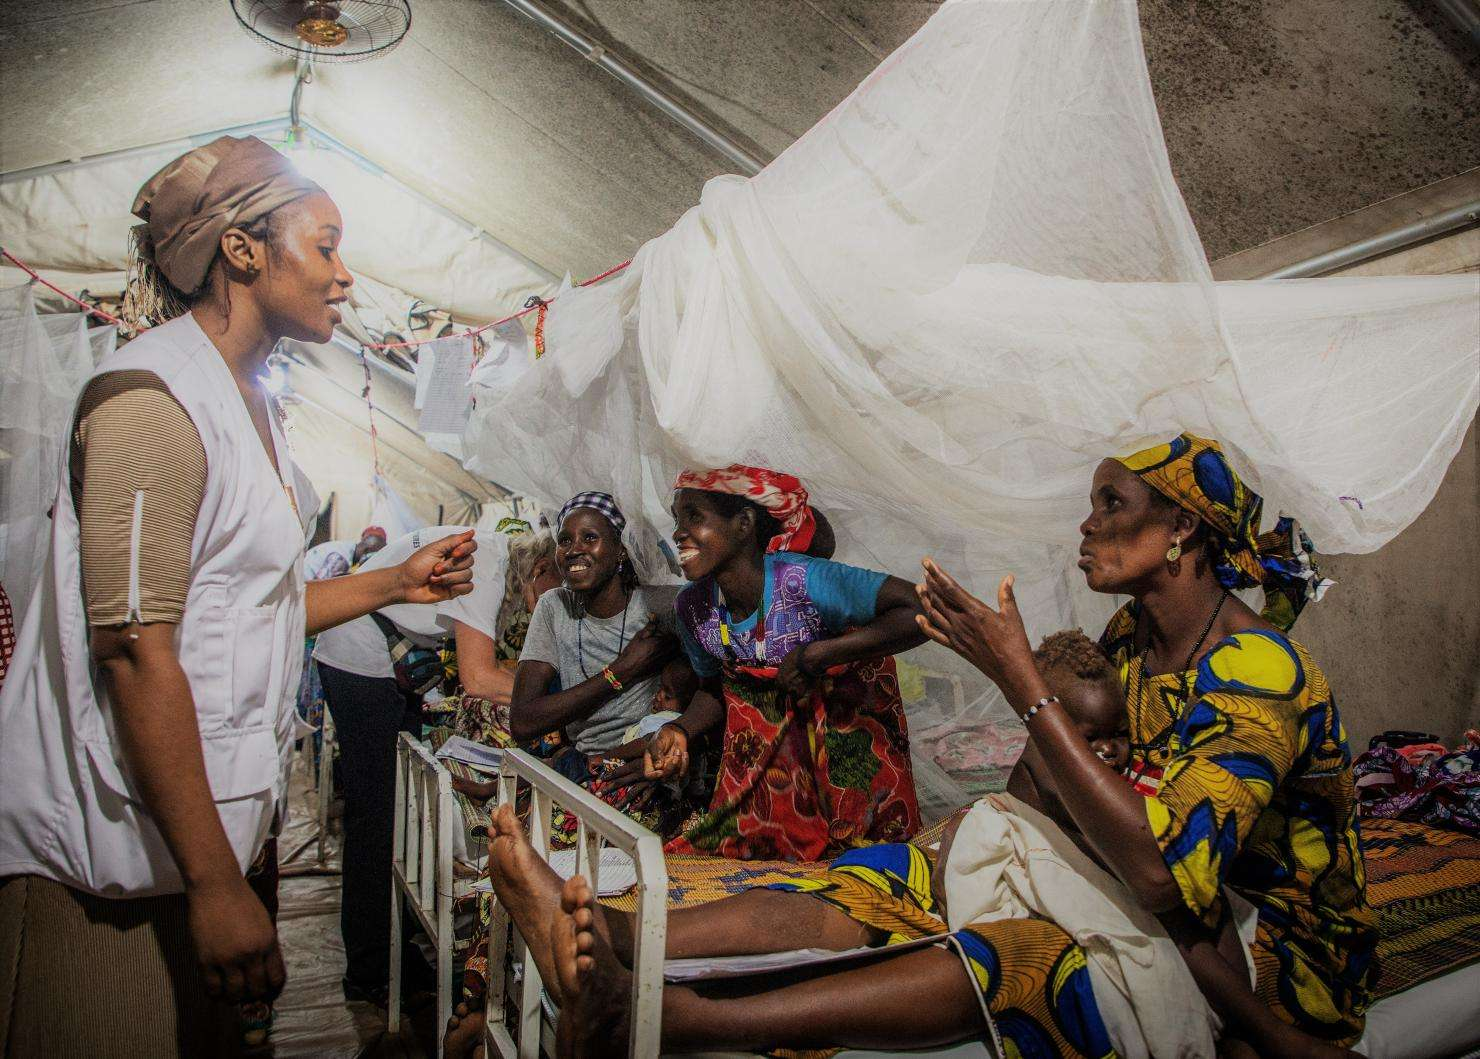 A MSF nurse talking to a mother in the phase 2 tent during the evening visit